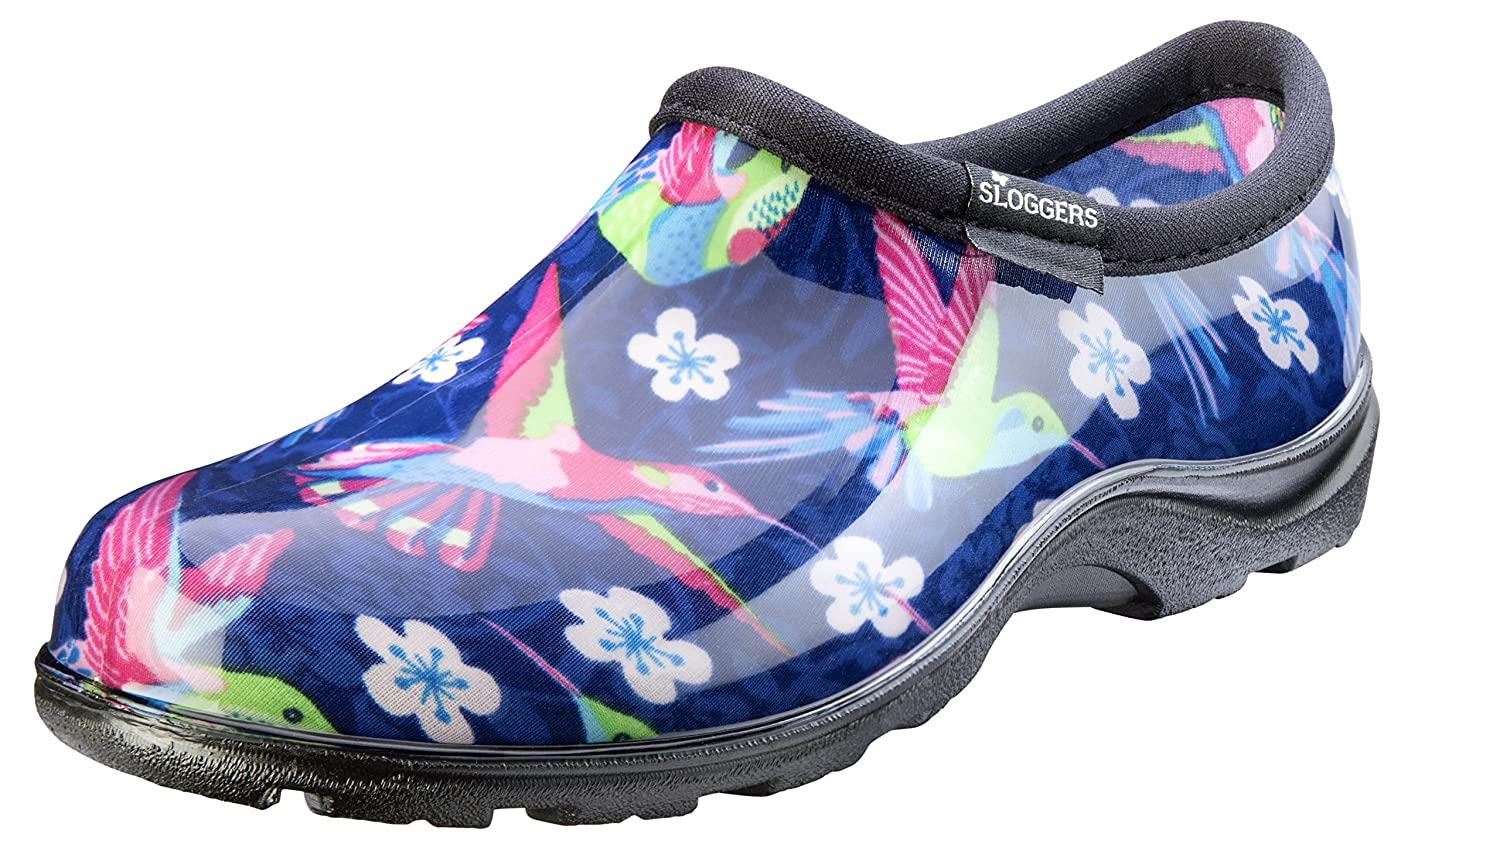 Sloggers Waterproof Rain & Garden Clogs Shoes, Hummingbird, Hummingbirds, 8 - Made in The USA